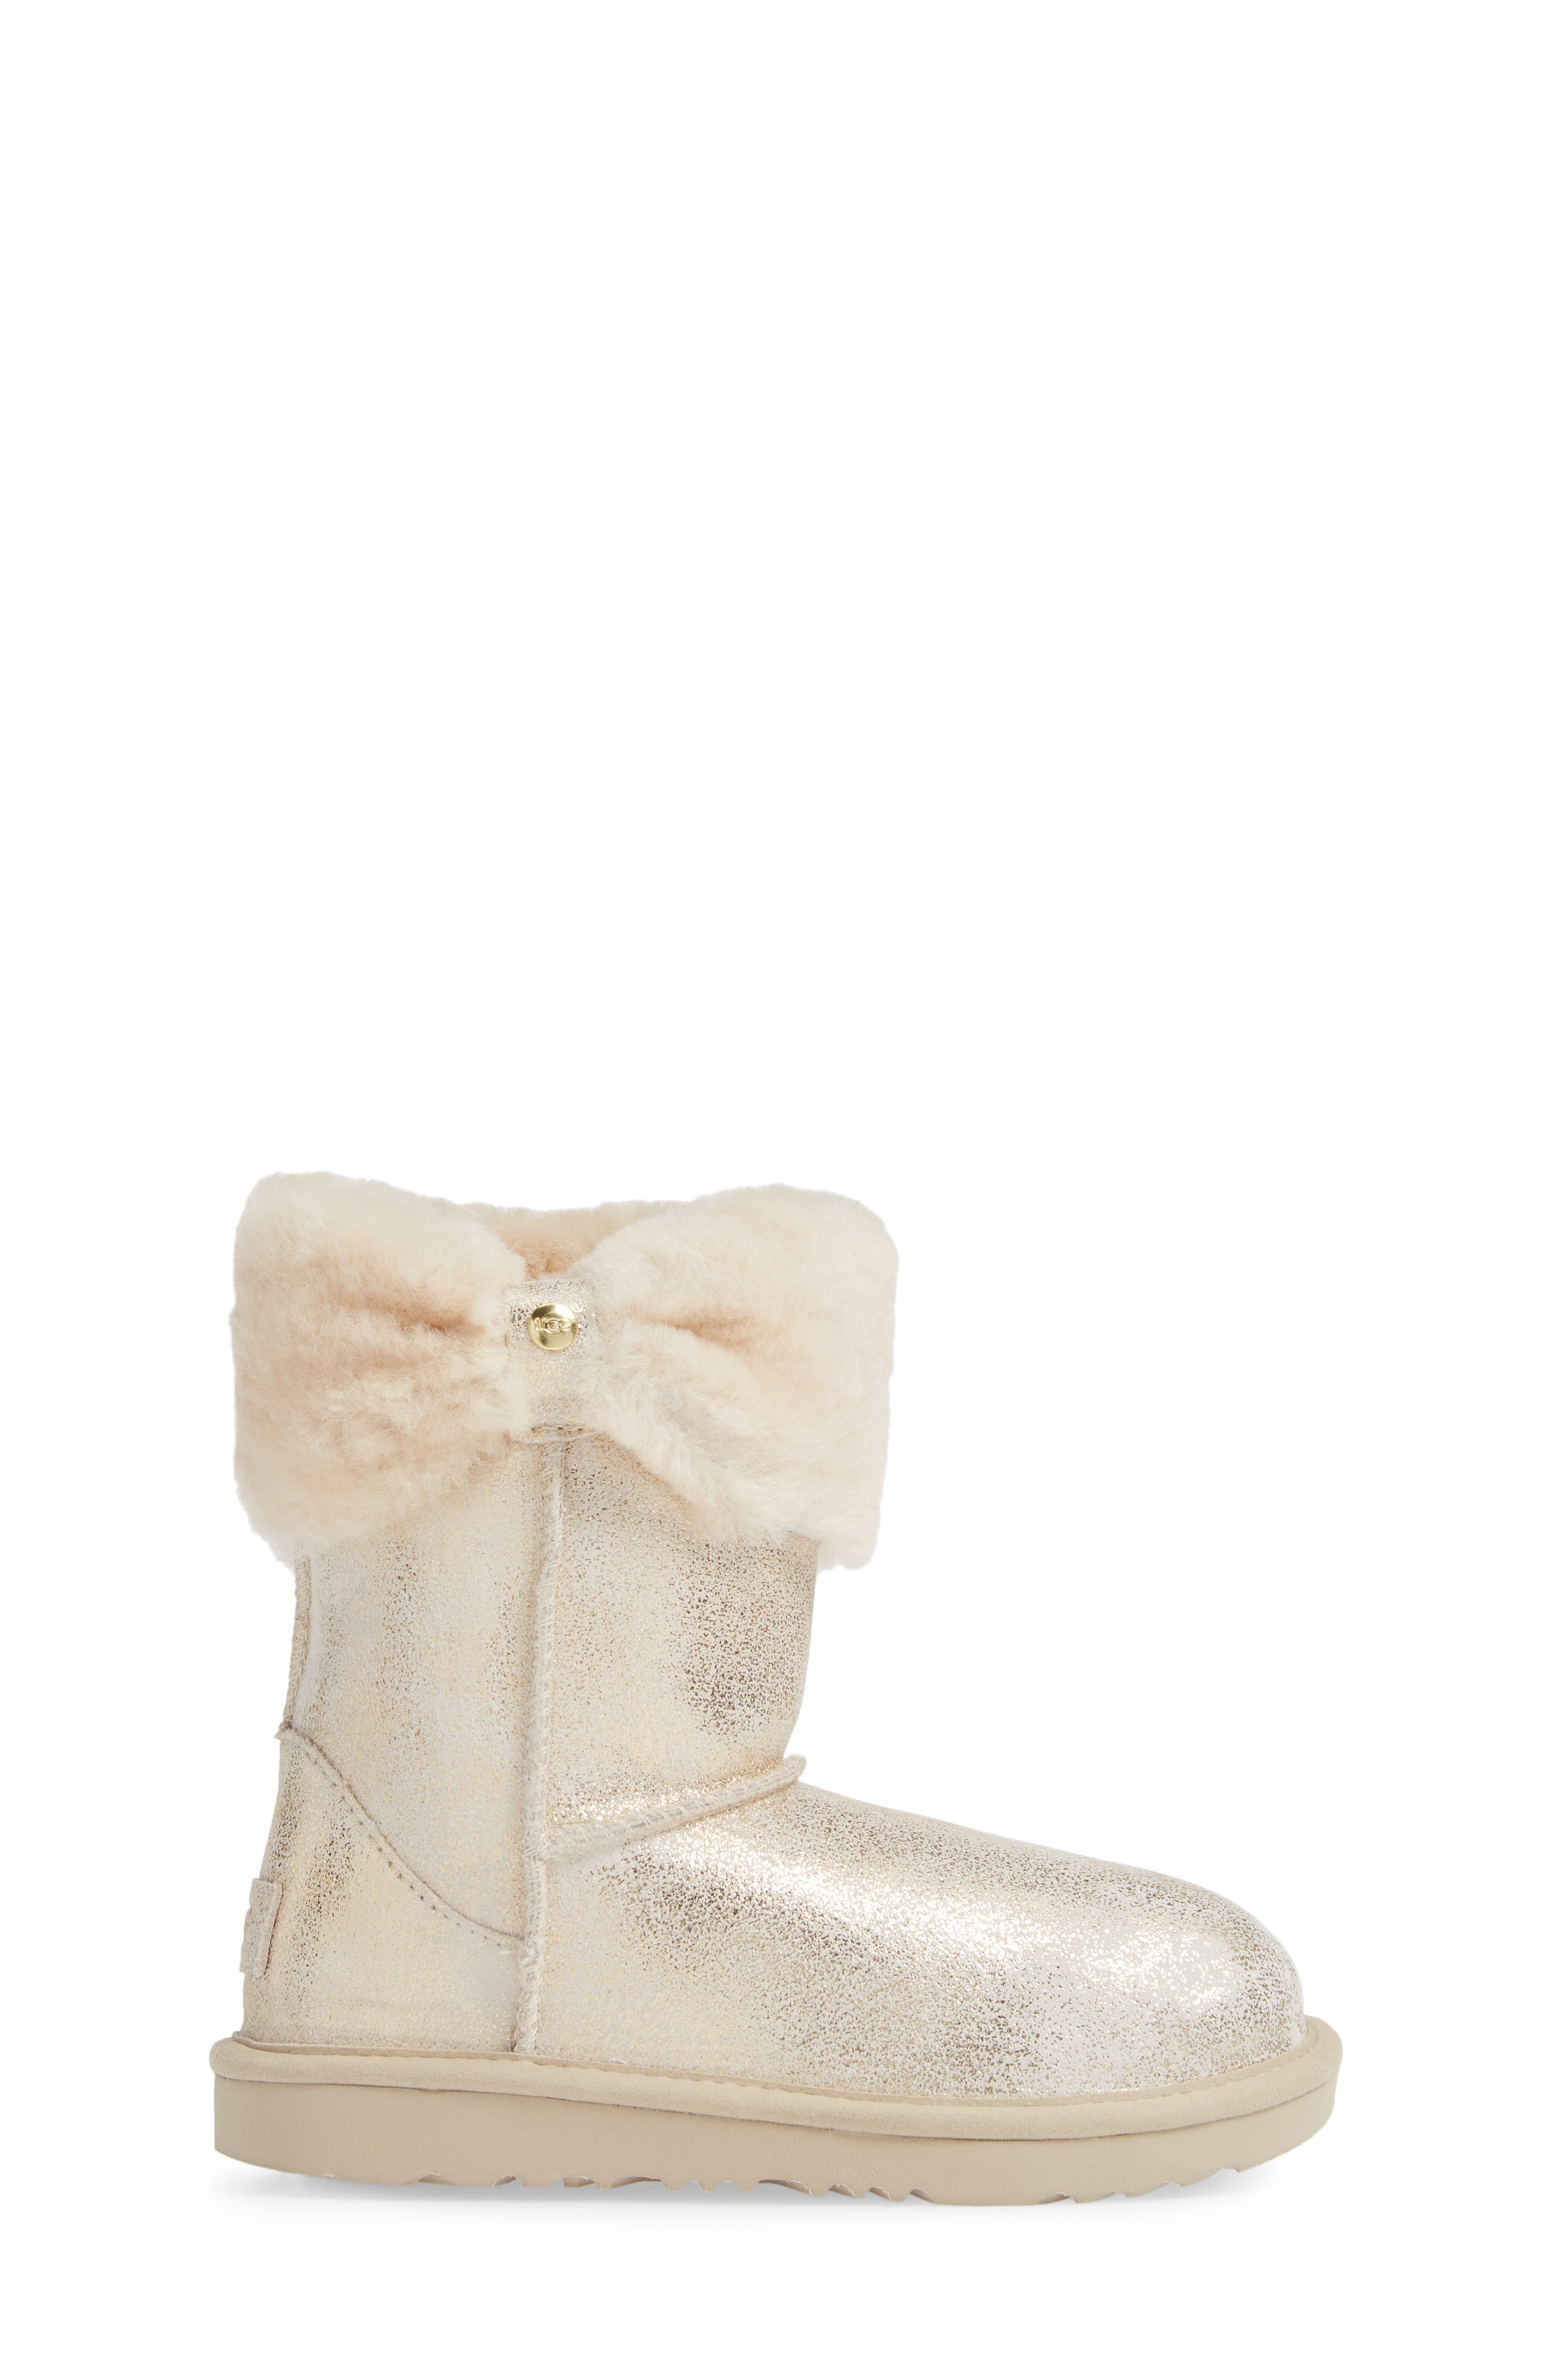 Ramona II Classic Short Boot,                             Alternate thumbnail 3, color,                             GOLD